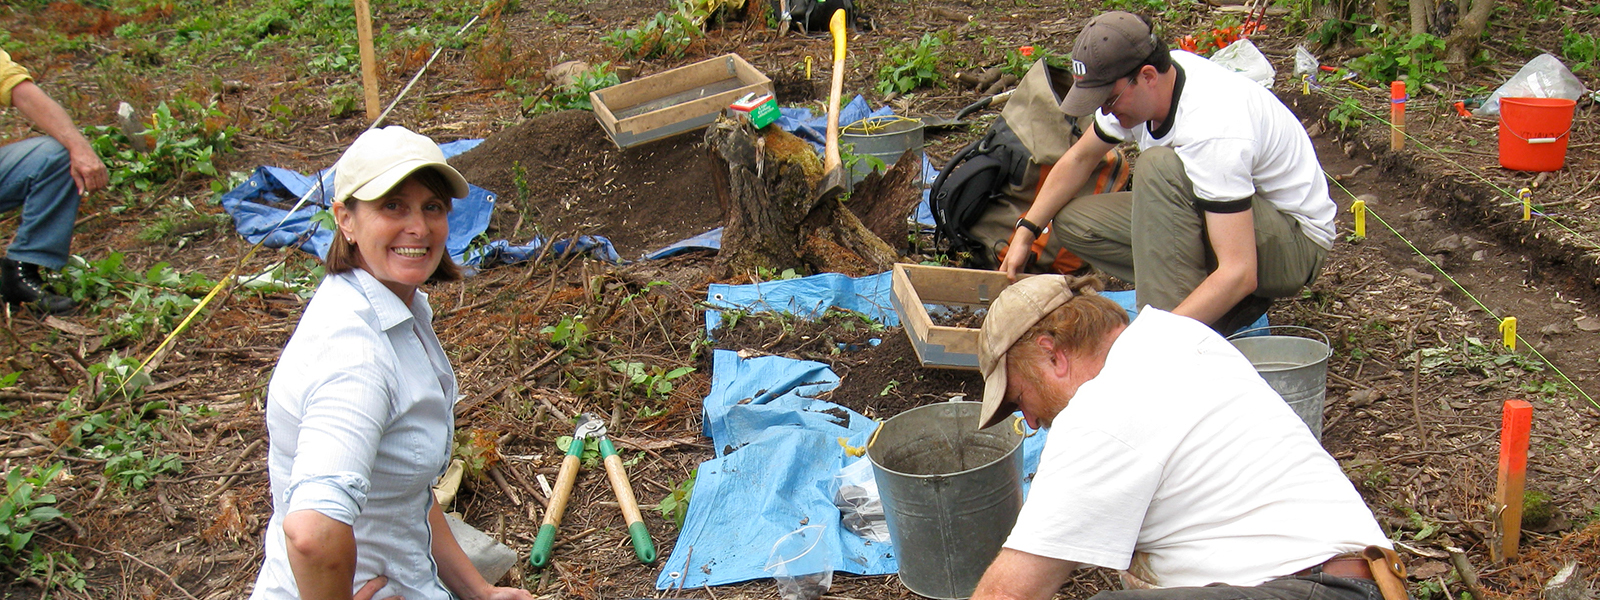 2009 excavations at Martin-Bird Site, Whitefish Lake, in Northwestern Ontario. The team investigates a large heating feature detected during a magnetic gradiometer survey conducted by Dr. Terry Gibson